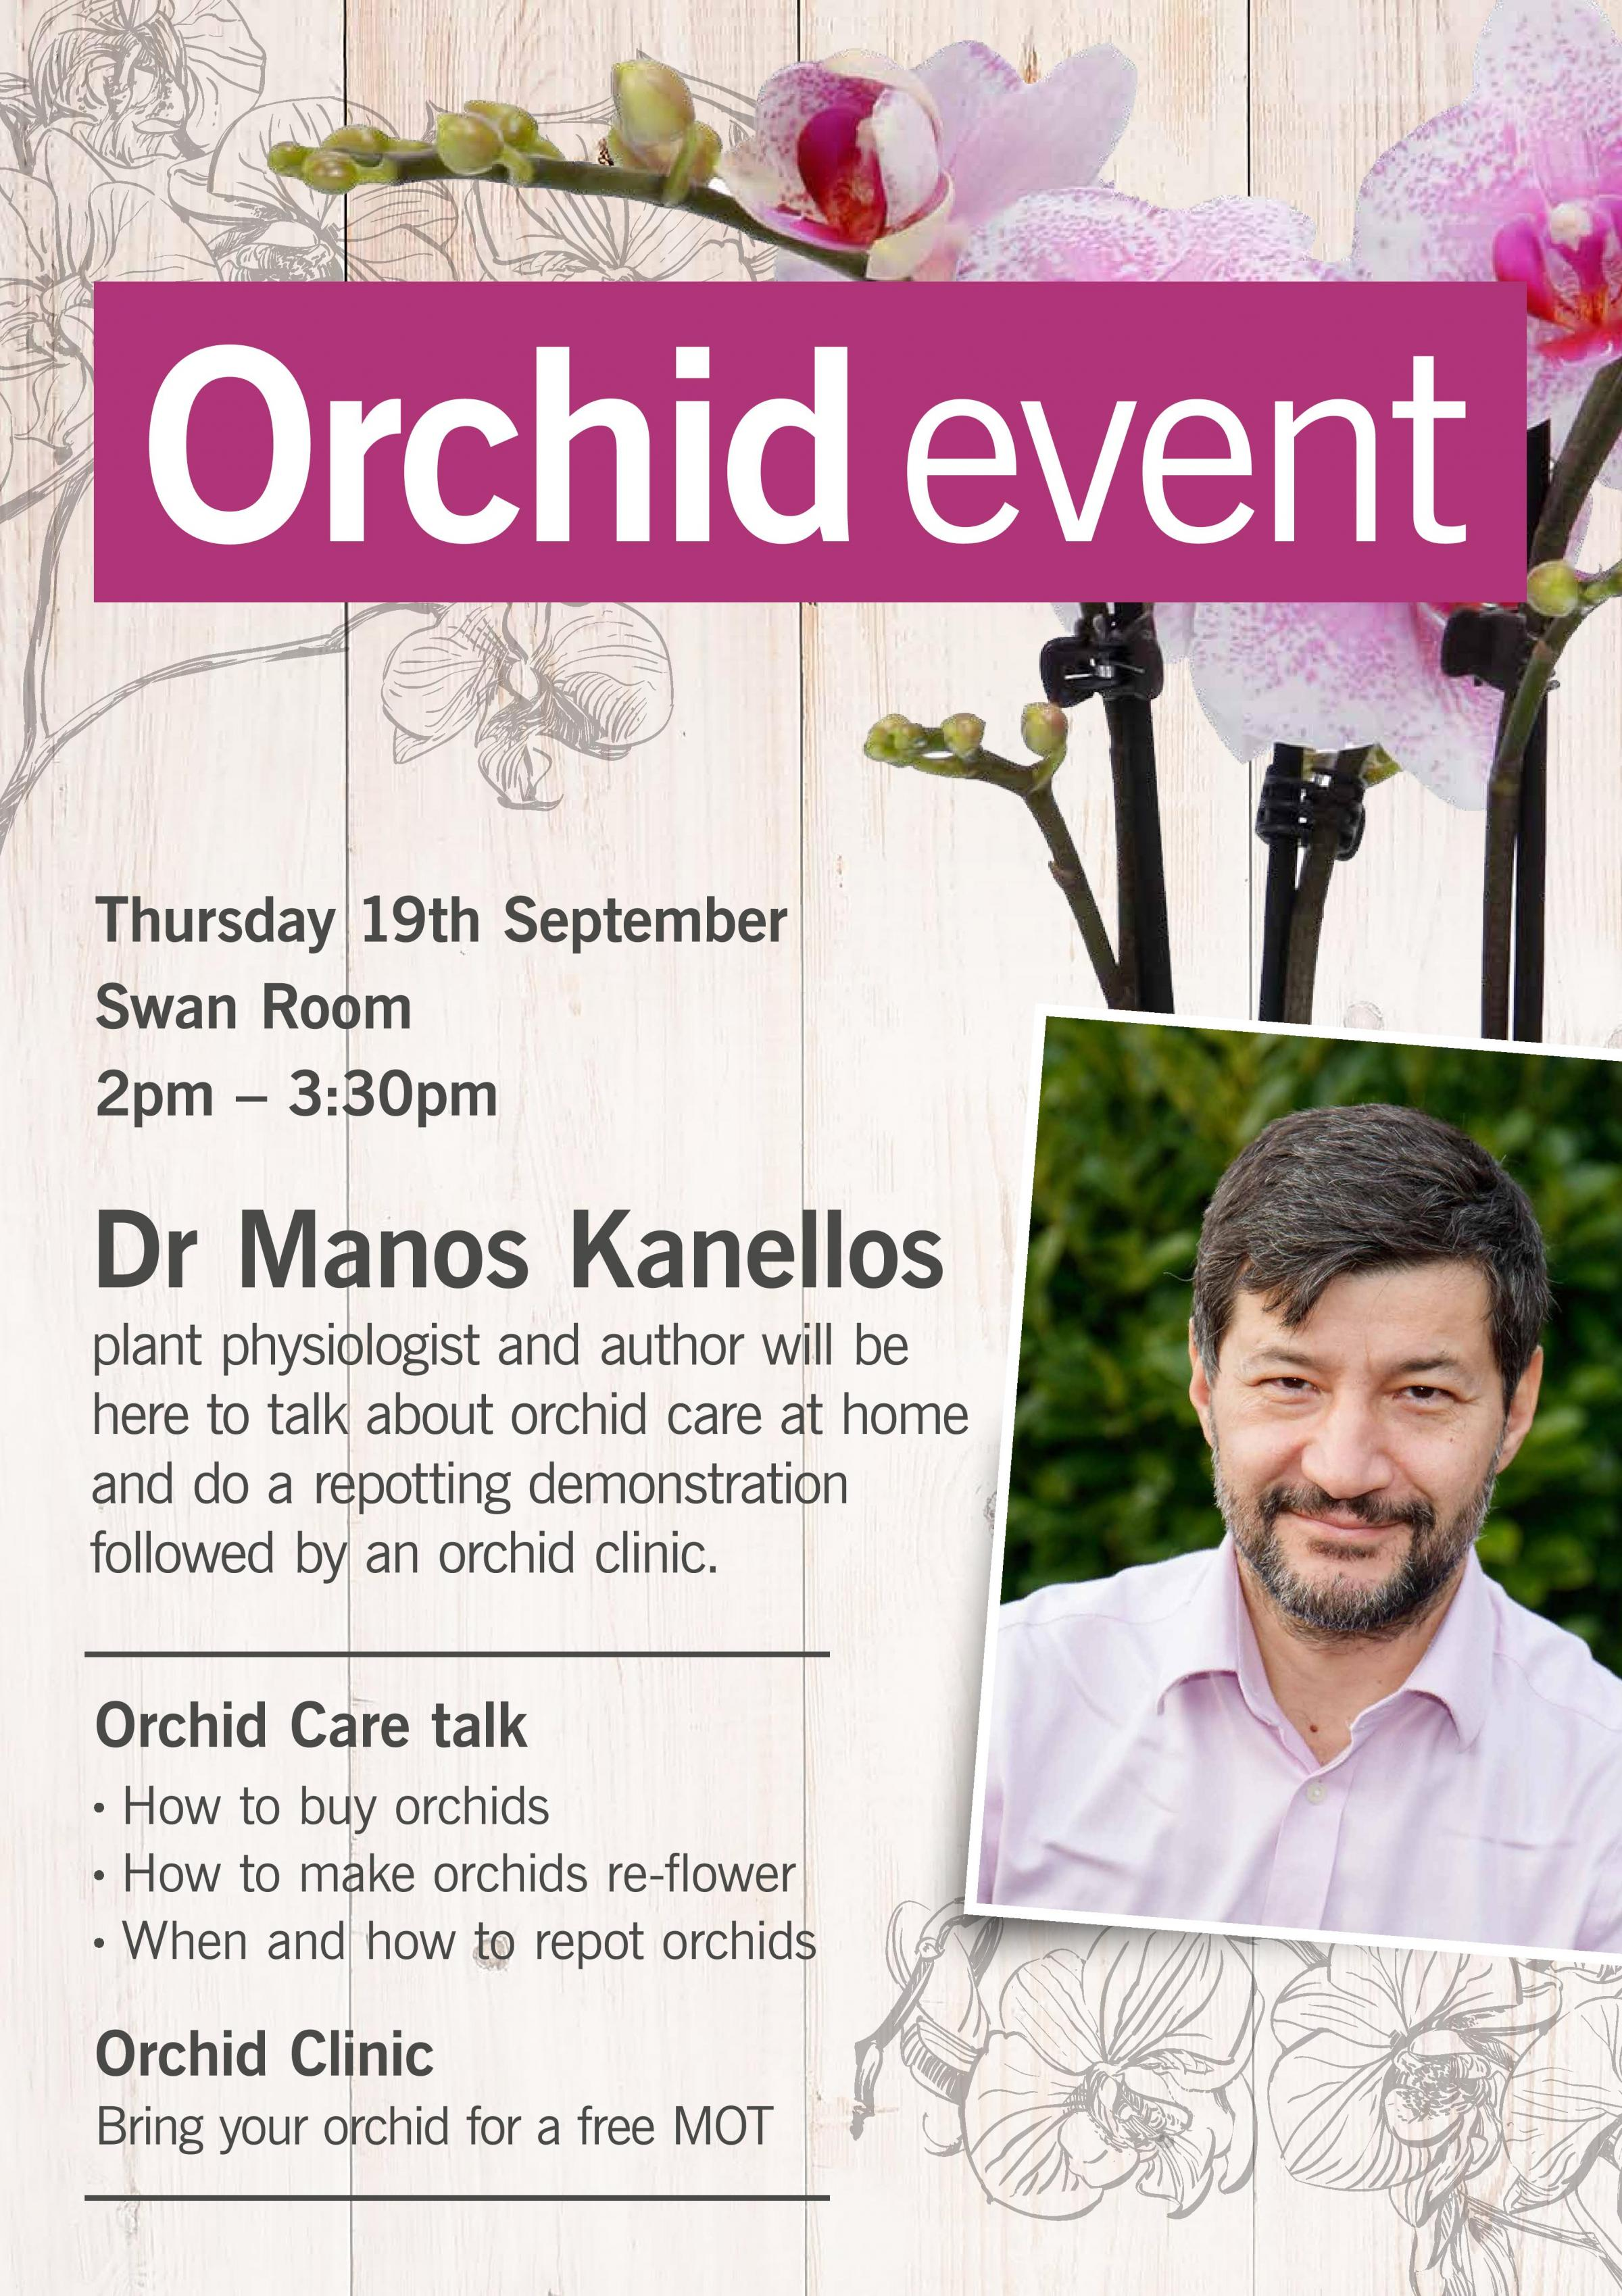 Orchid event